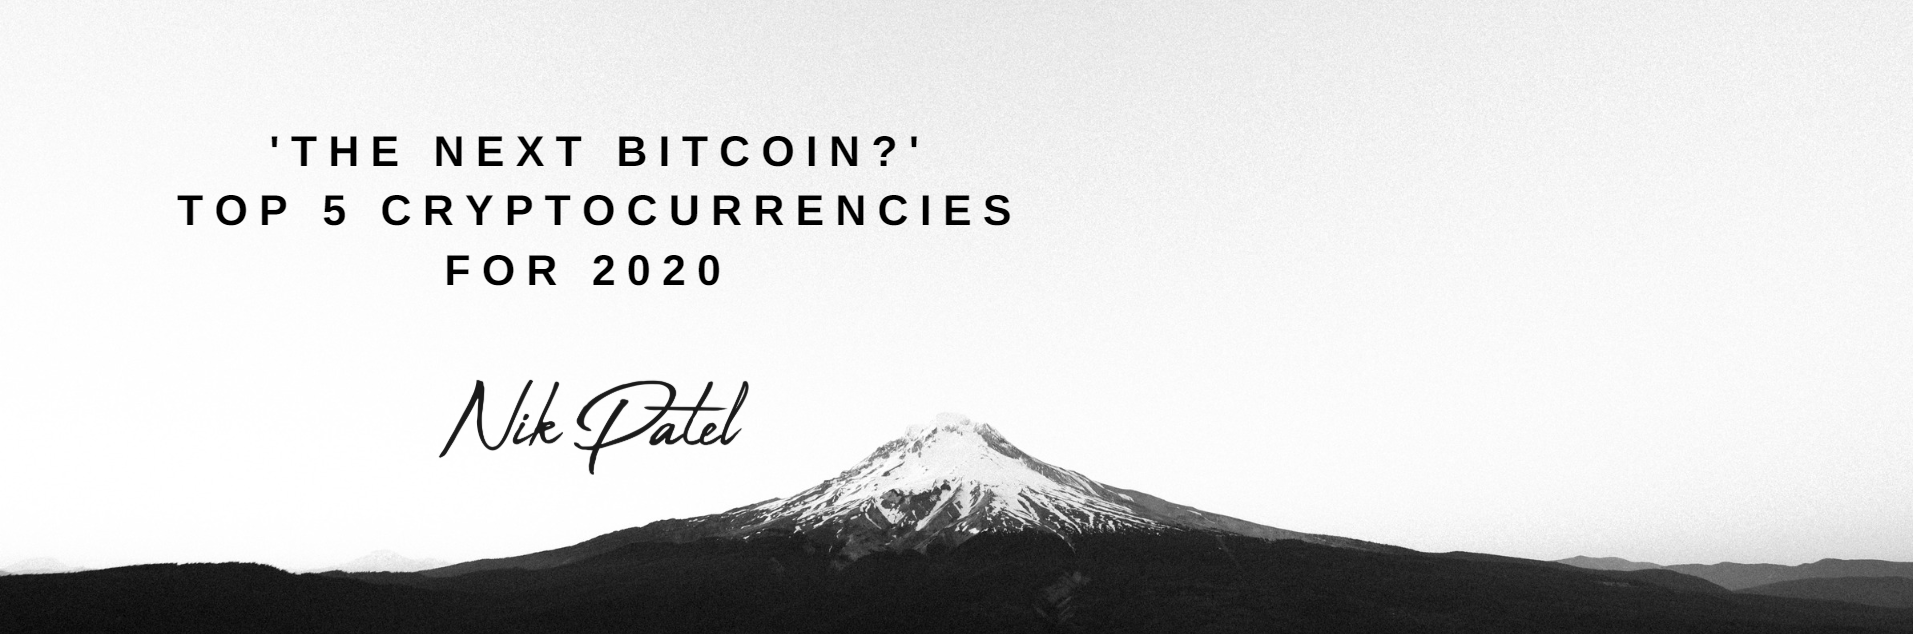 Best Cryptocurrency Exchange 2020.The Next Bitcoin Top 5 Cryptocurrencies That Will